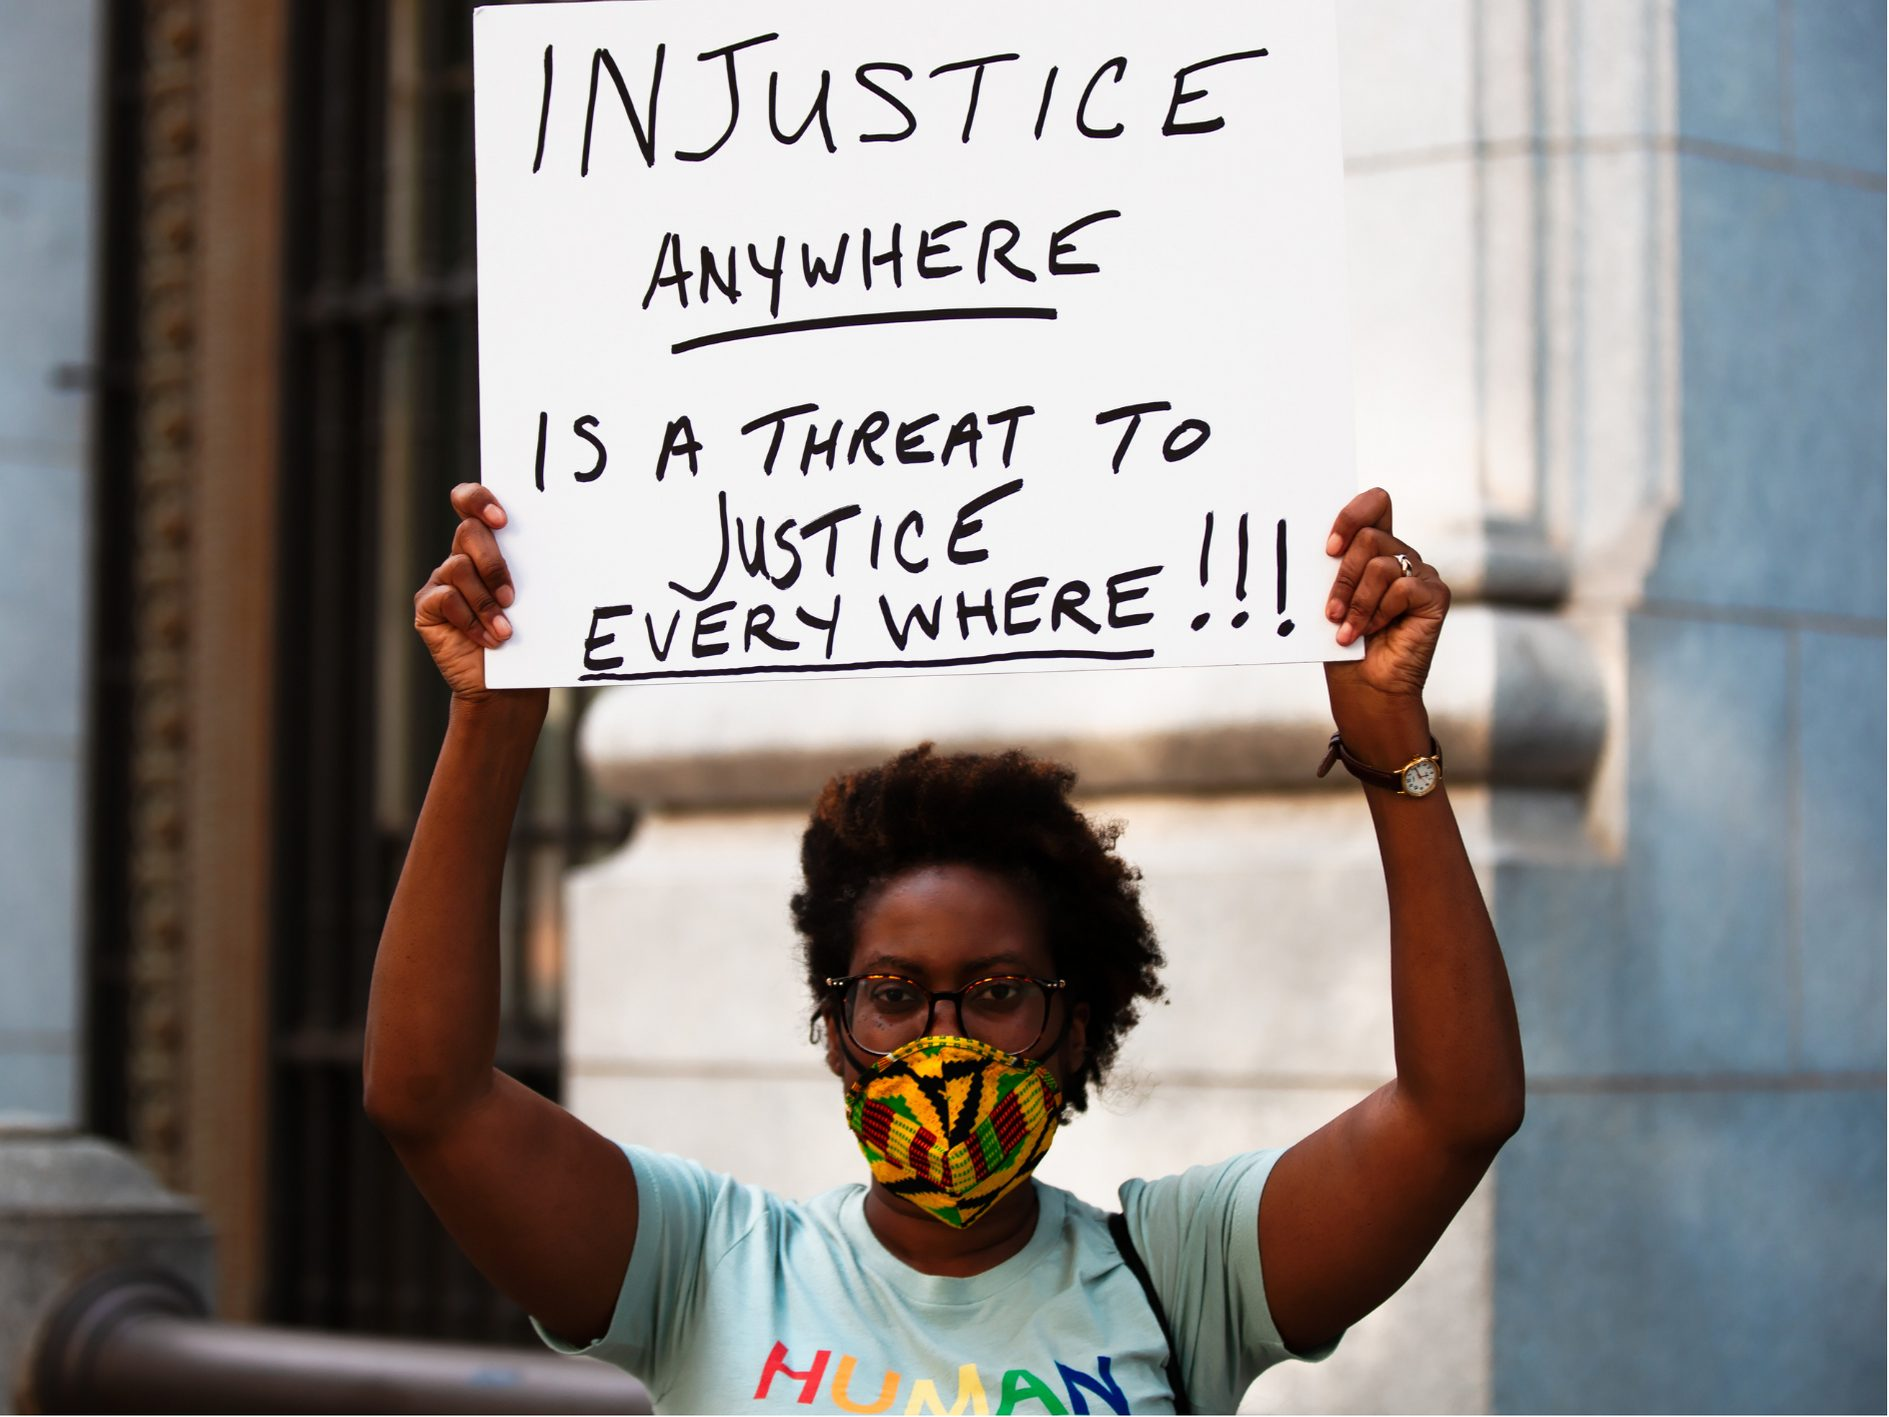 I Will Never Stop Speaking Out Against Injustice